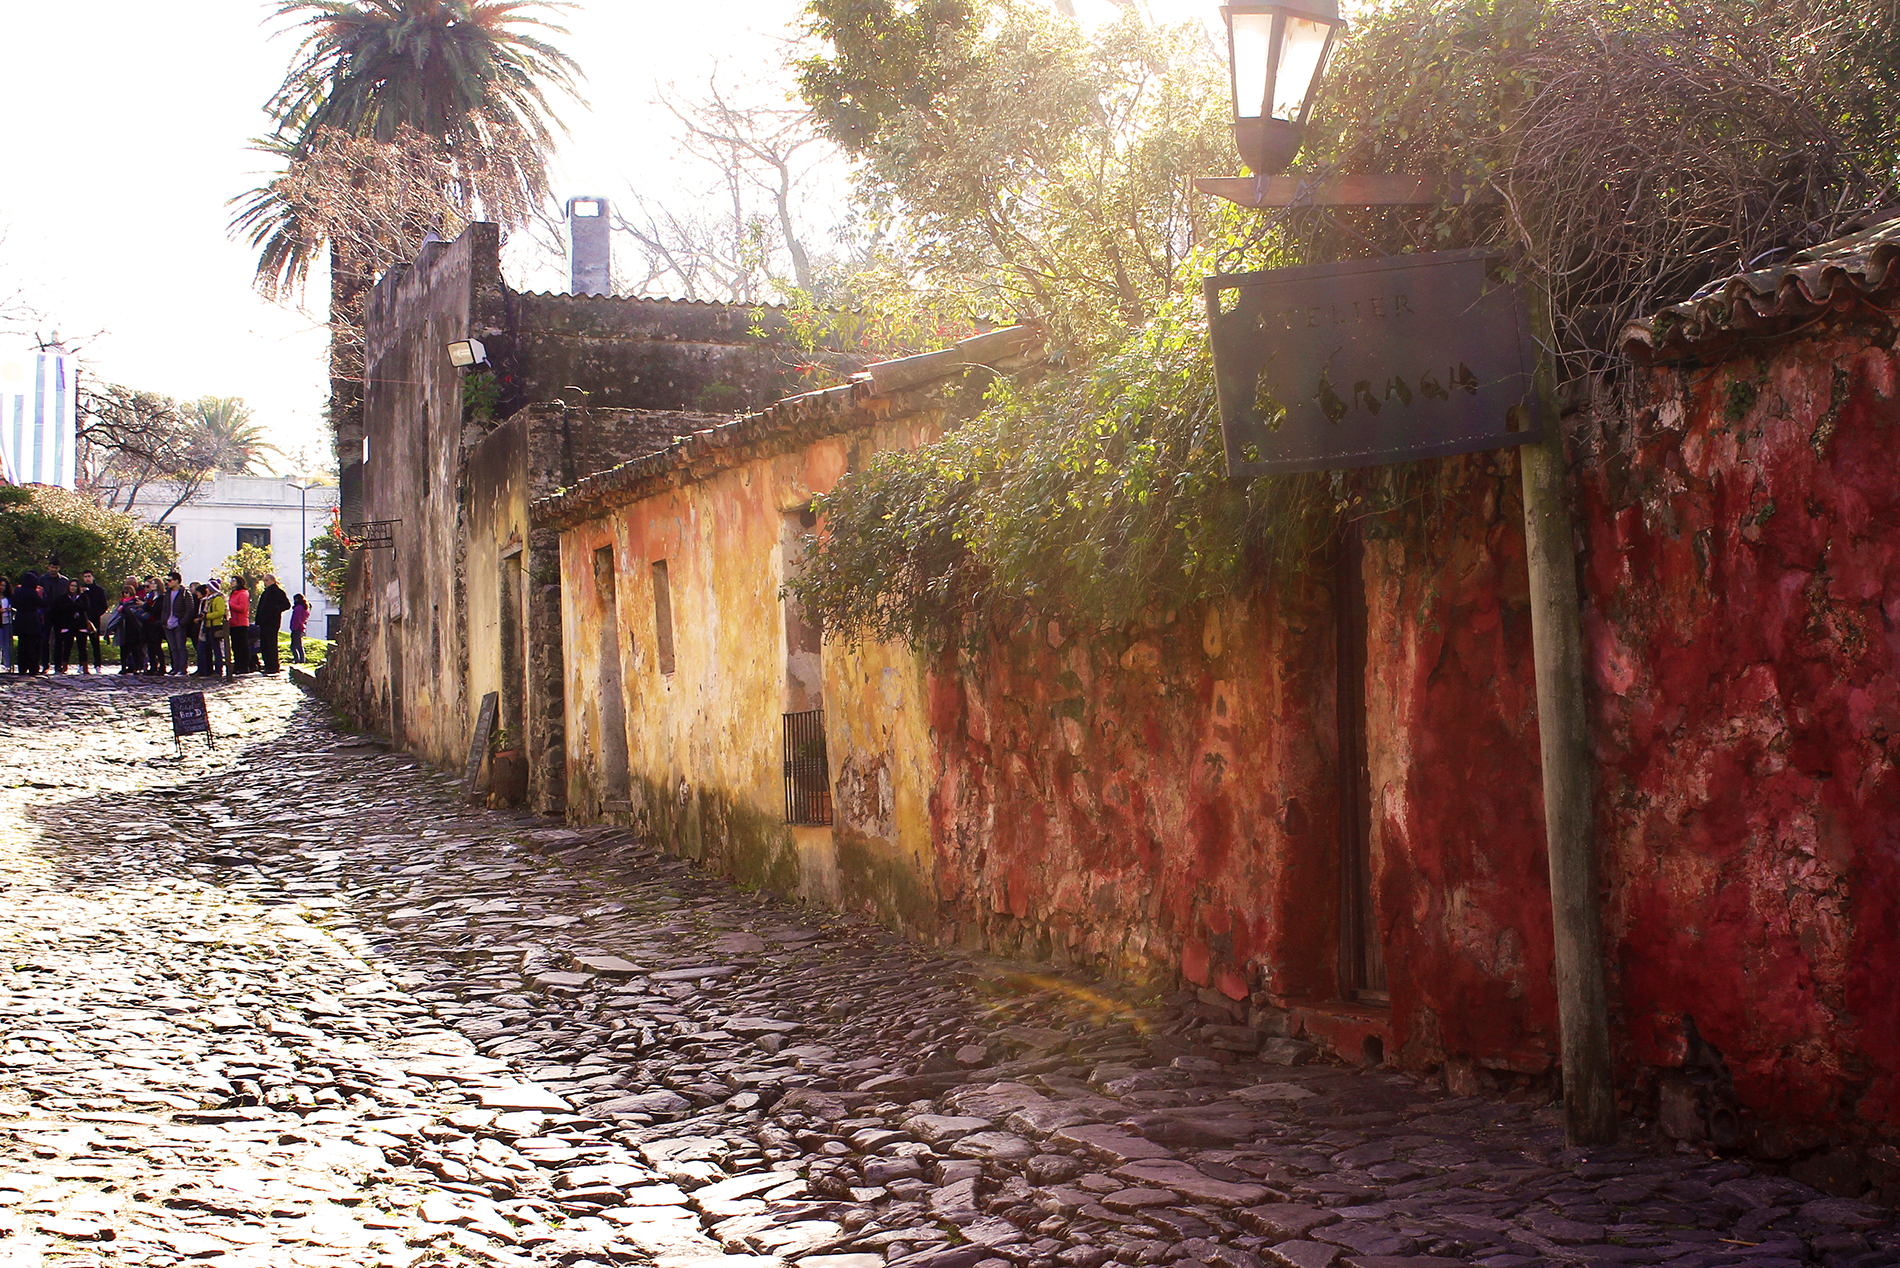 Travel blog street photography in Colonia del Sacramento, Uruguay